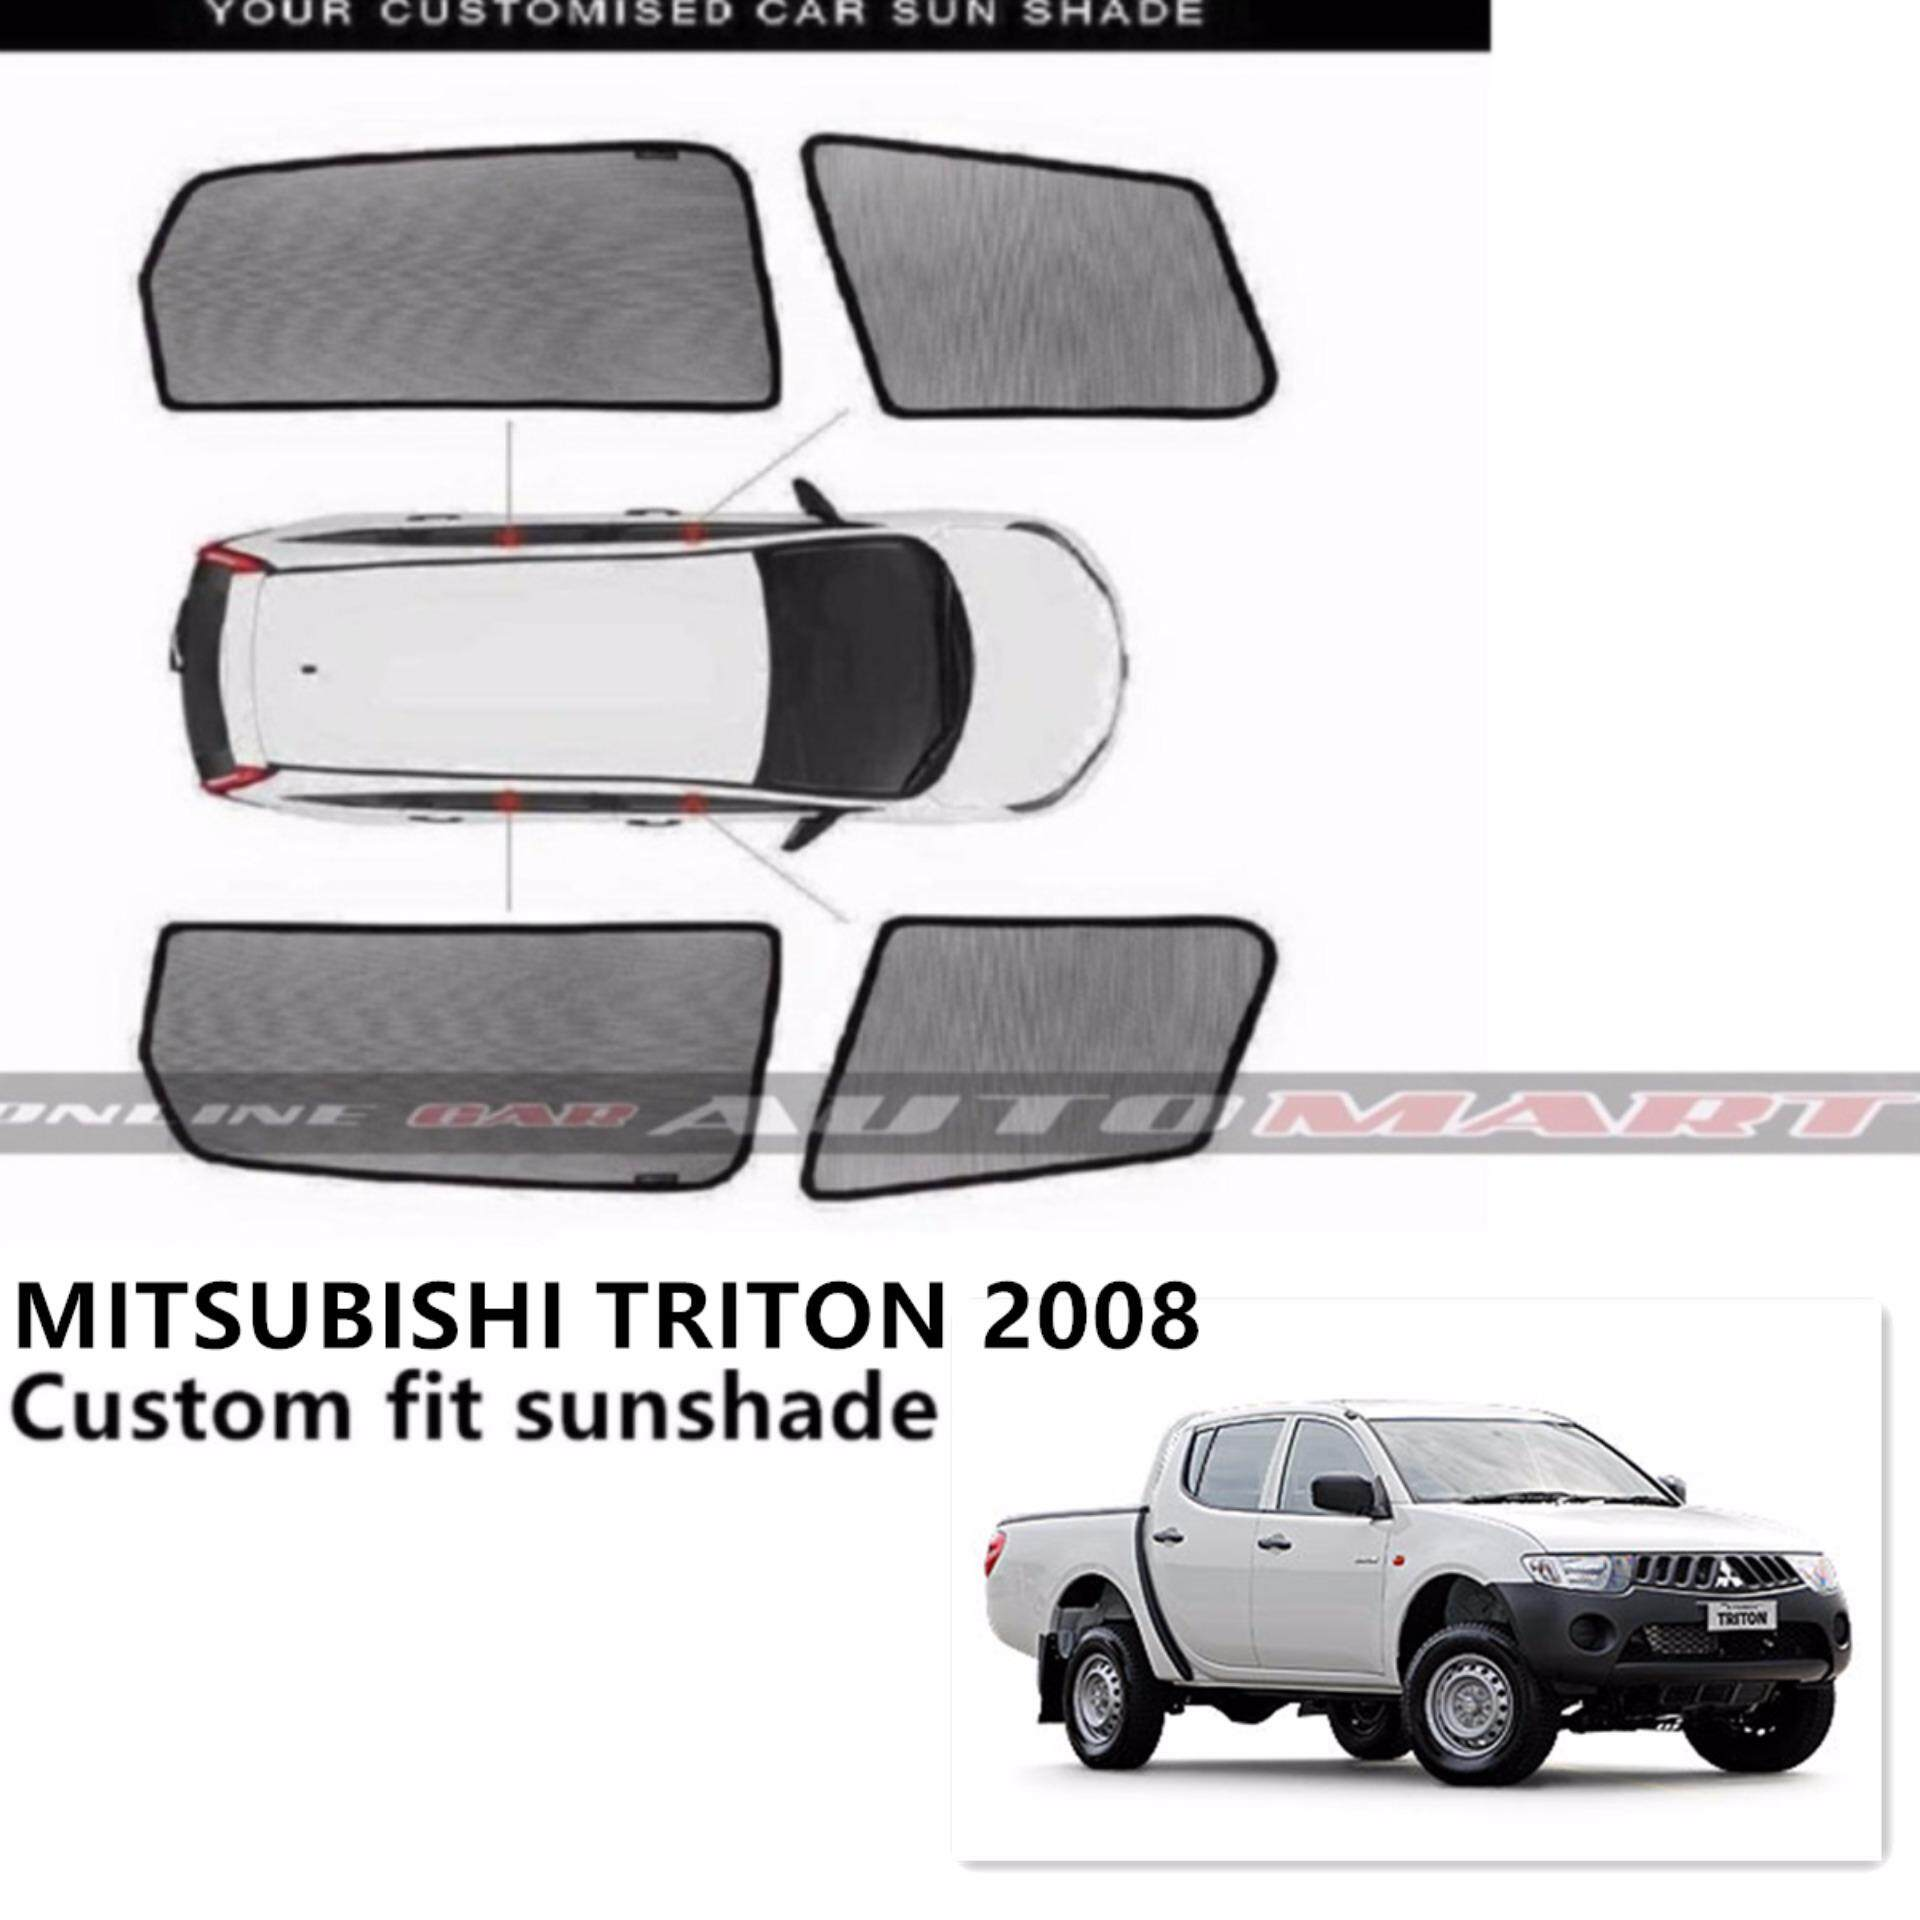 Custom Fit OEM Sunshades/ Sun shades for Mitsubishi Triton Yr 2008-2013 - 4pcs